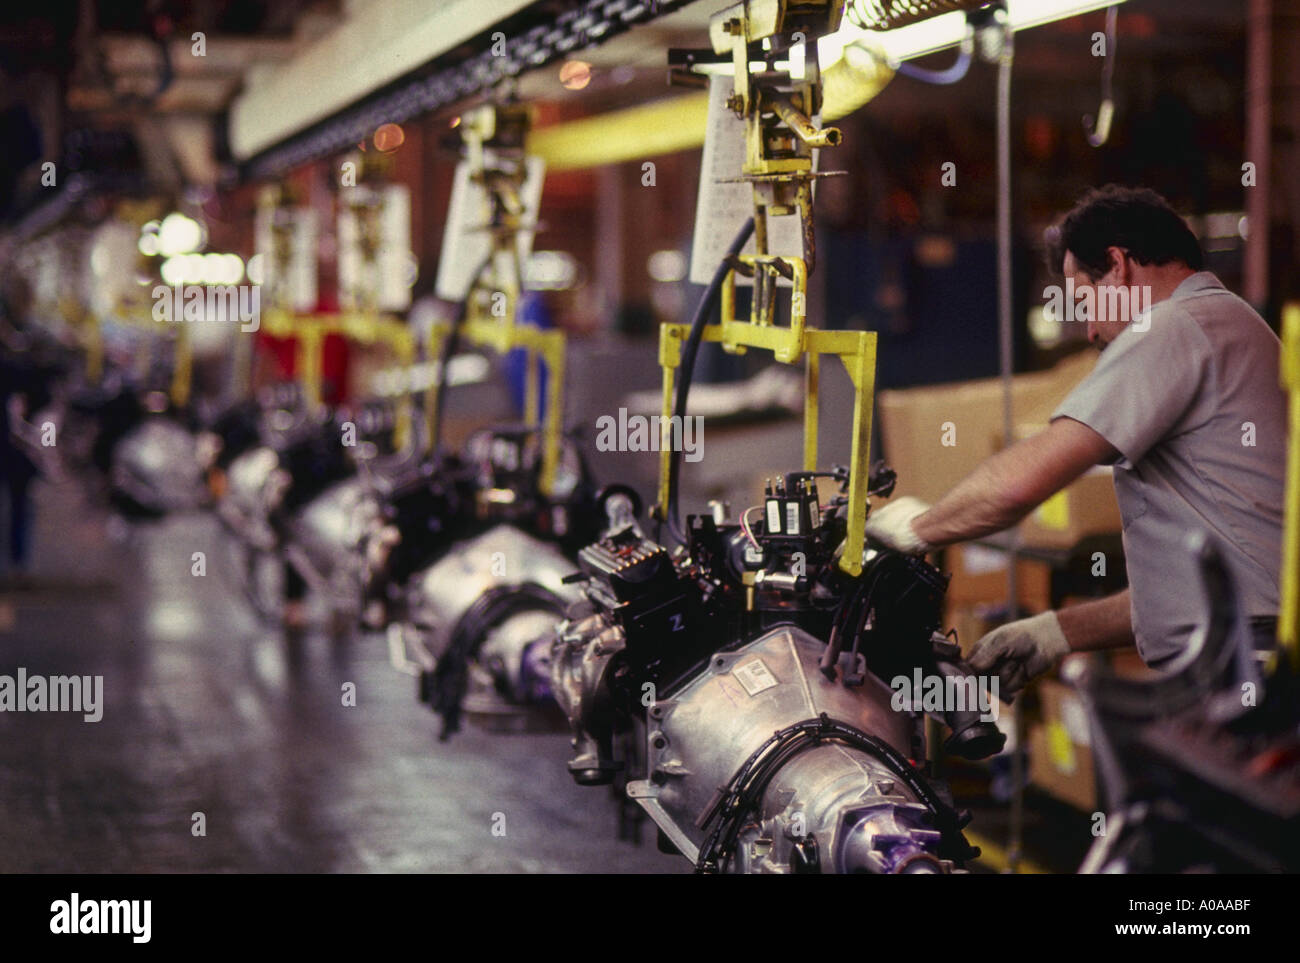 Workers assemble engines at General Motors plant in Baltimore Maryland Stock Photo